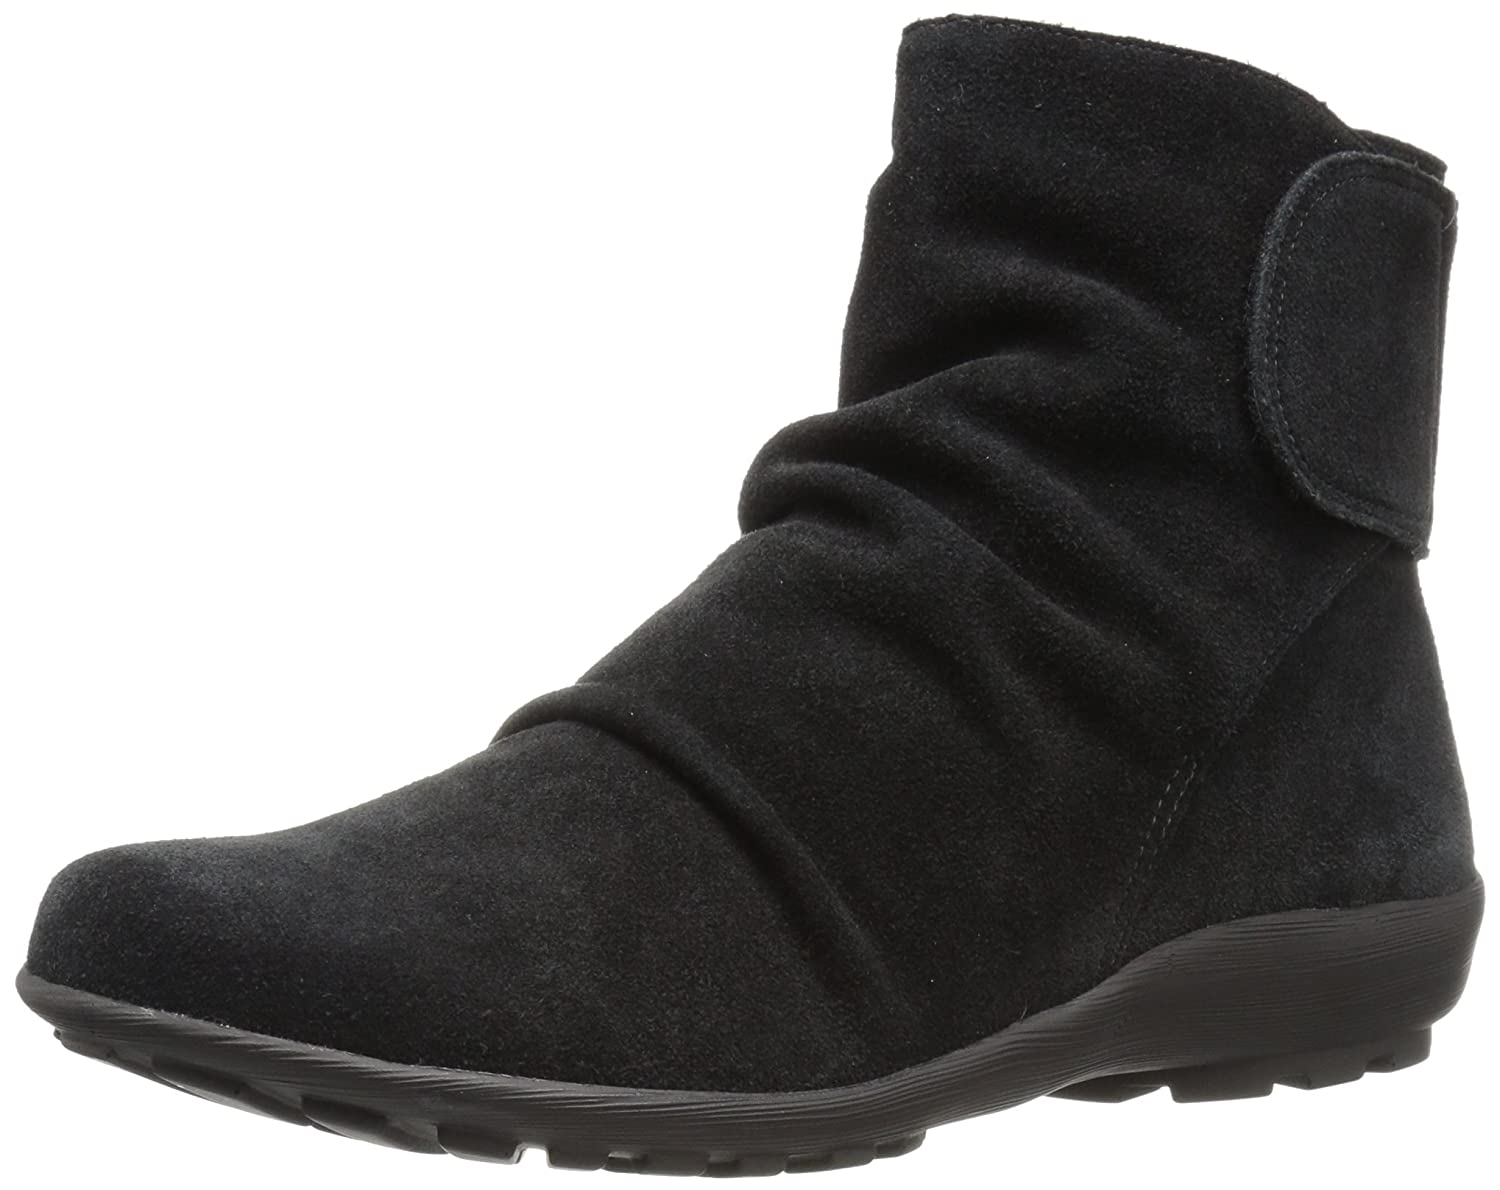 Walking Cradles Women's Harlow Ankle Boot B01MZD7DY7 8.5 W US|Black Suede